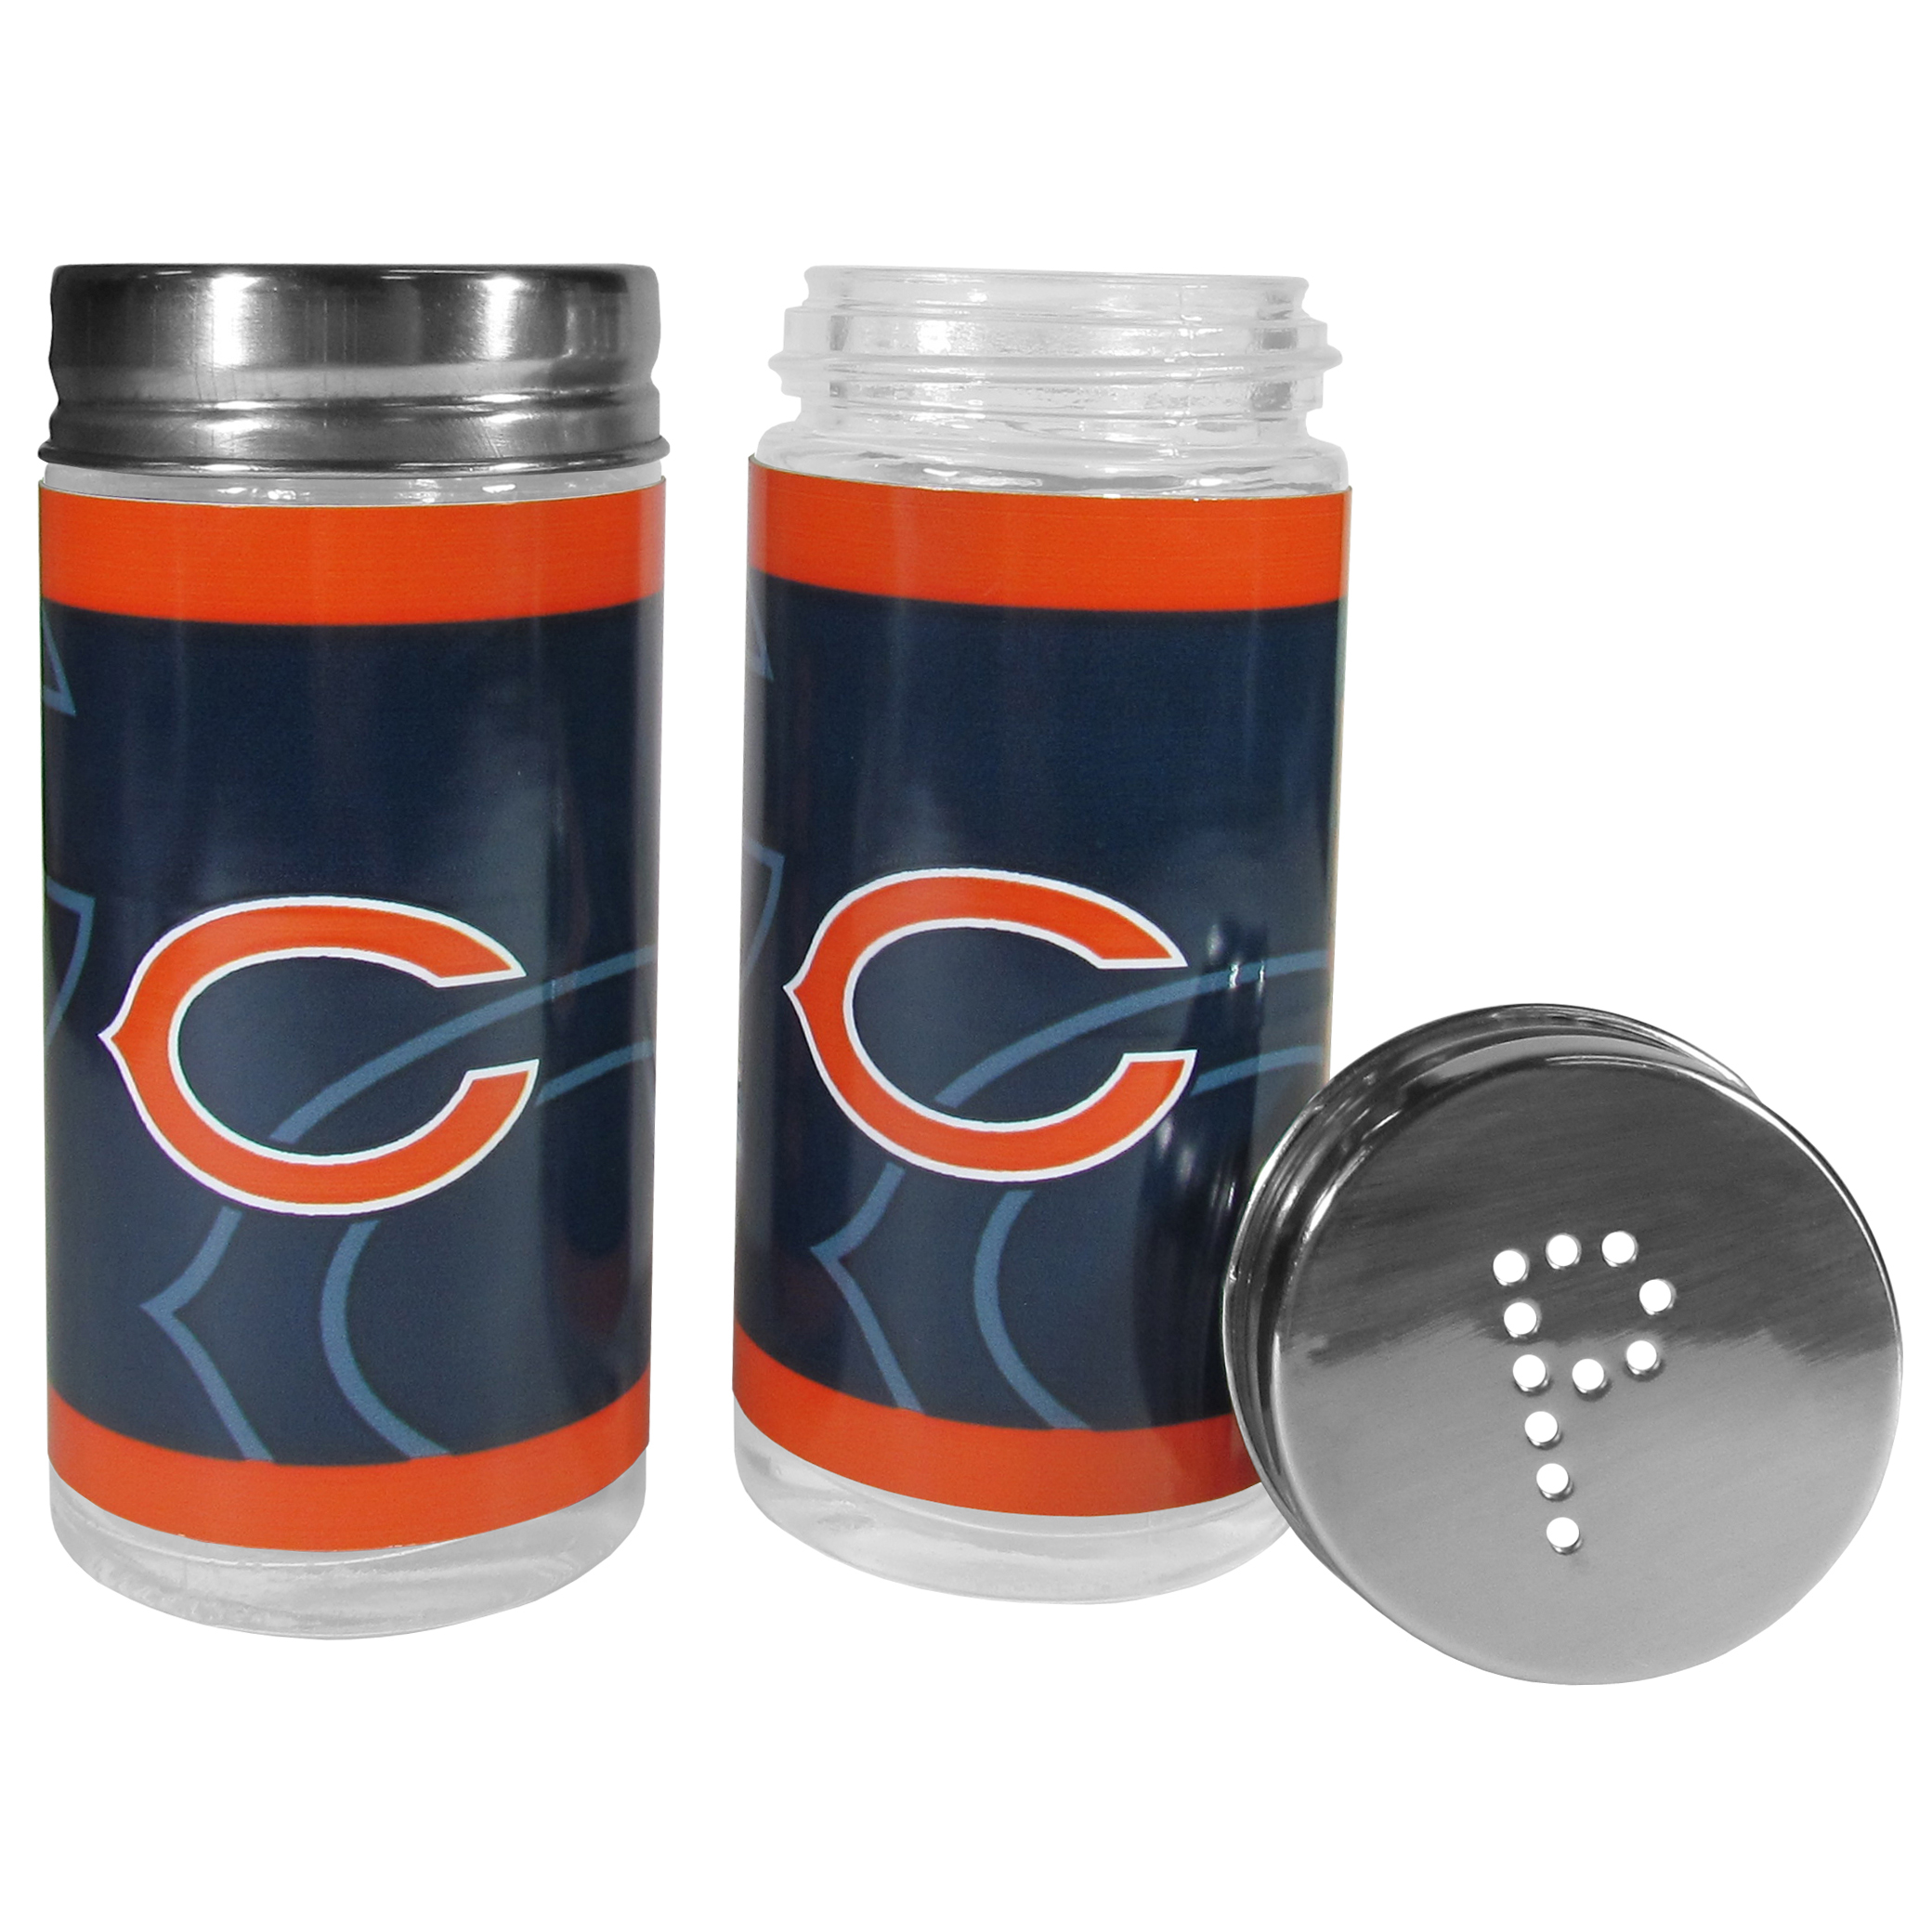 Chicago Bears Tailgater Salt & Pepper Shakers - No tailgate party is complete without your Chicago Bears salt & pepper shakers featuring bright team graphics. The glass shakers are 3.75 inches tall and the screw top lids have holes that spell out P and S. These team shakers are a great grill accessory whether you are barbecuing on the patio, picnicing or having a game day party.